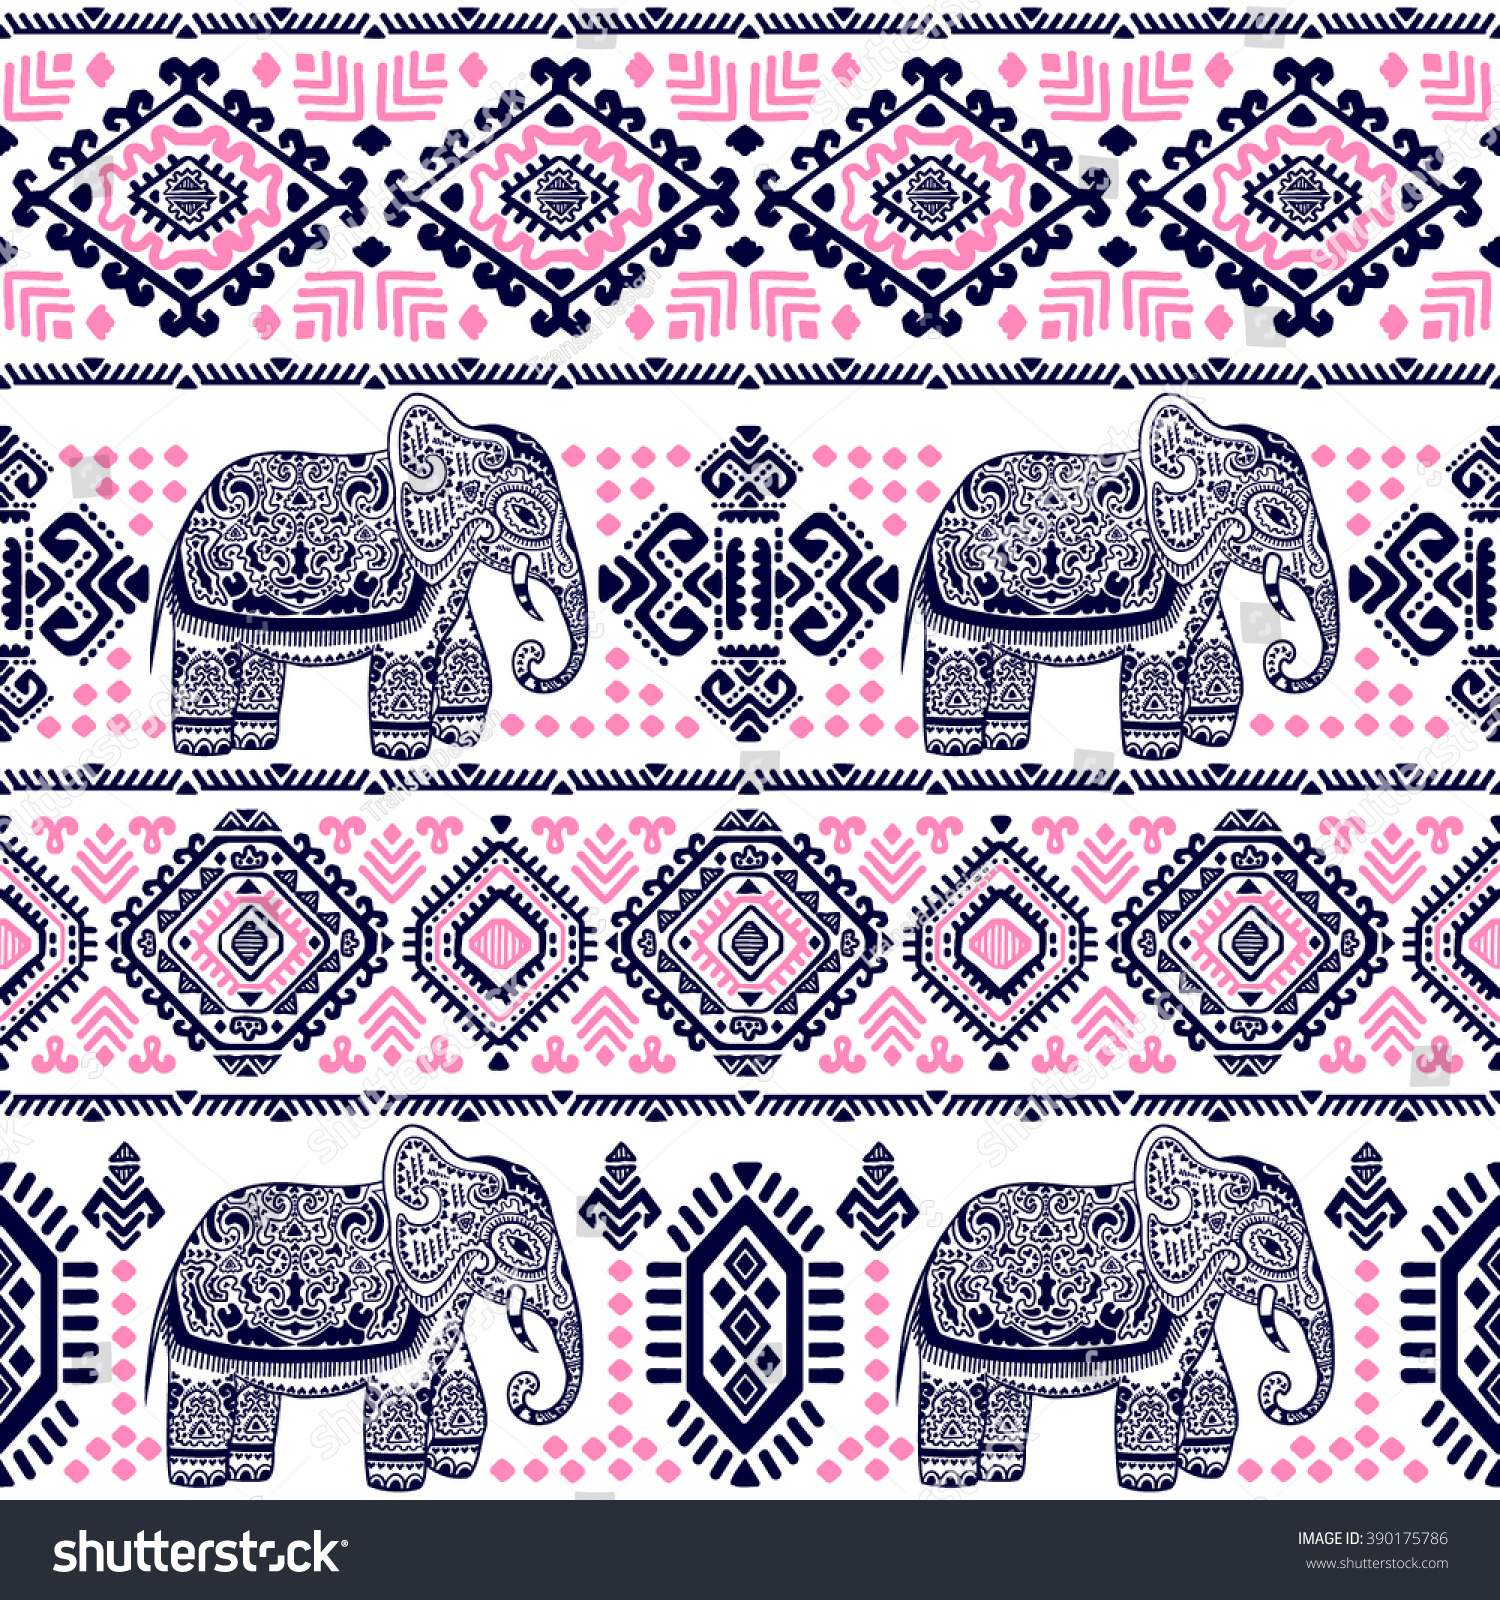 Lotus designs coloring book - Vintage Graphic Vector Indian Lotus Ethnic Elephant African Tribal Ornament Can Be Used For